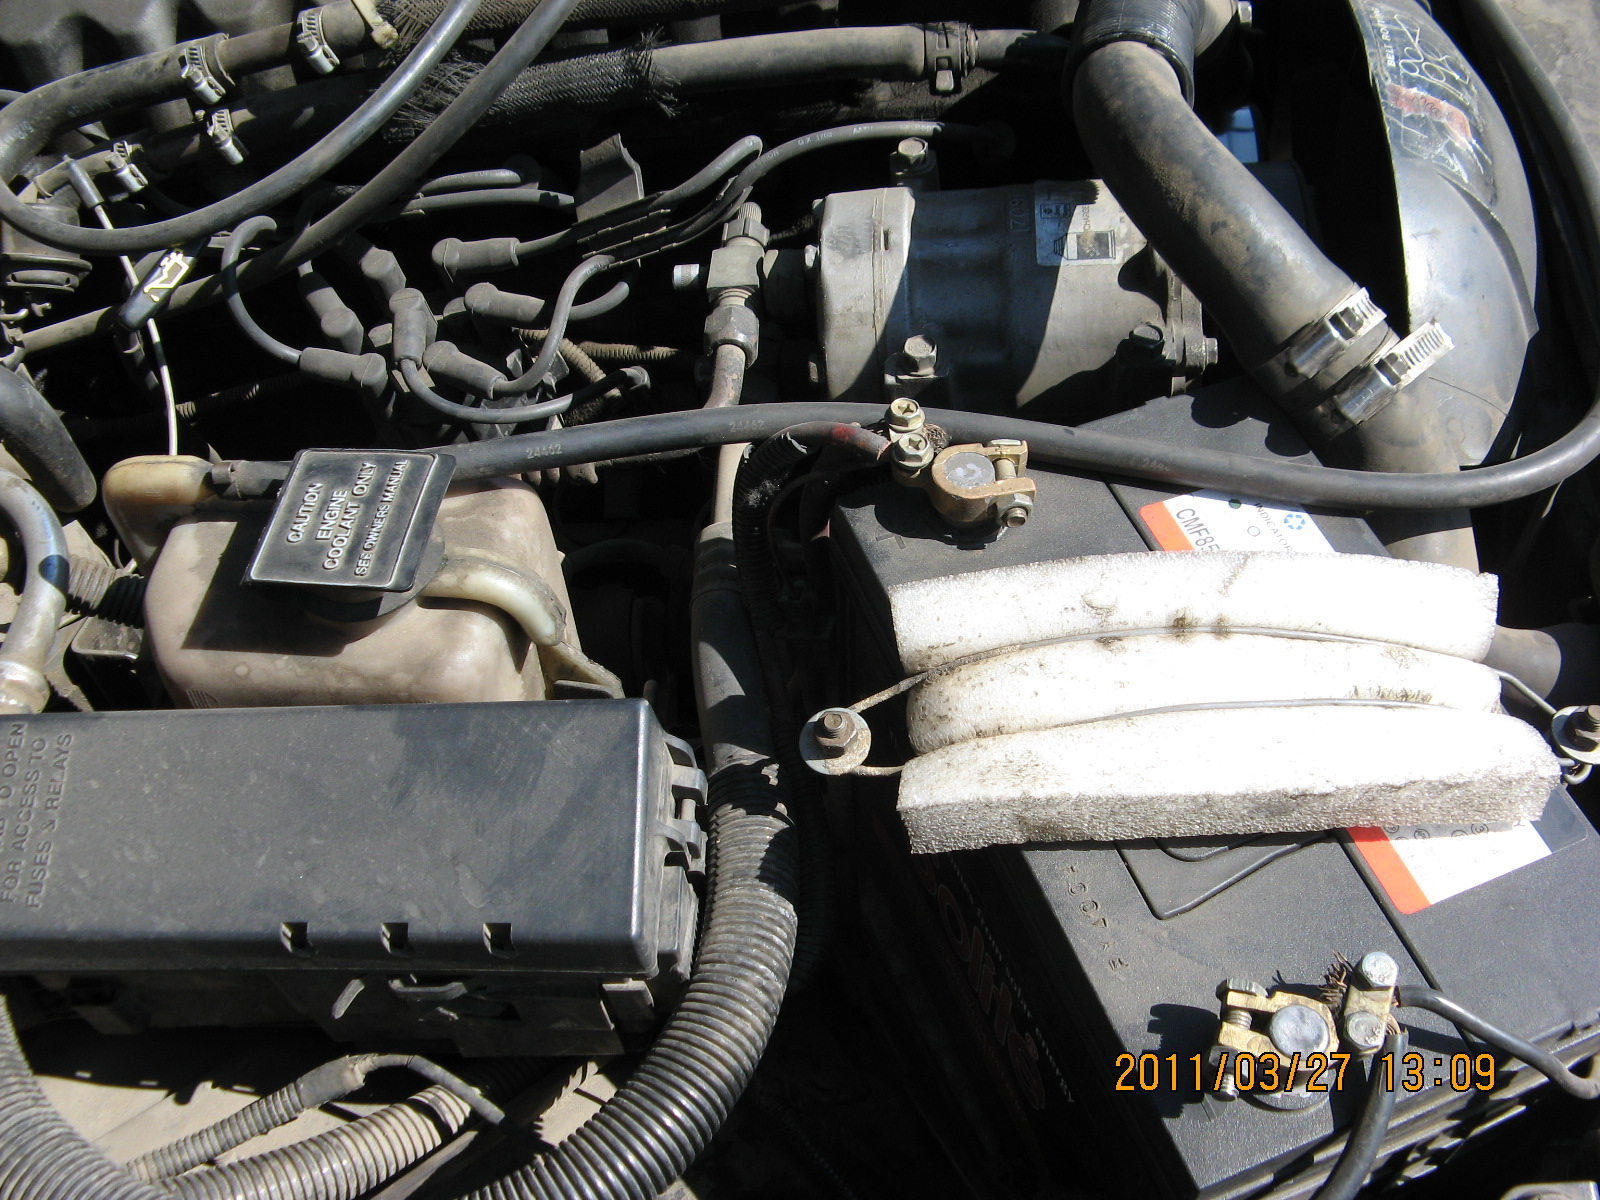 My 91 Cherokee XJ Battery cable upgrade